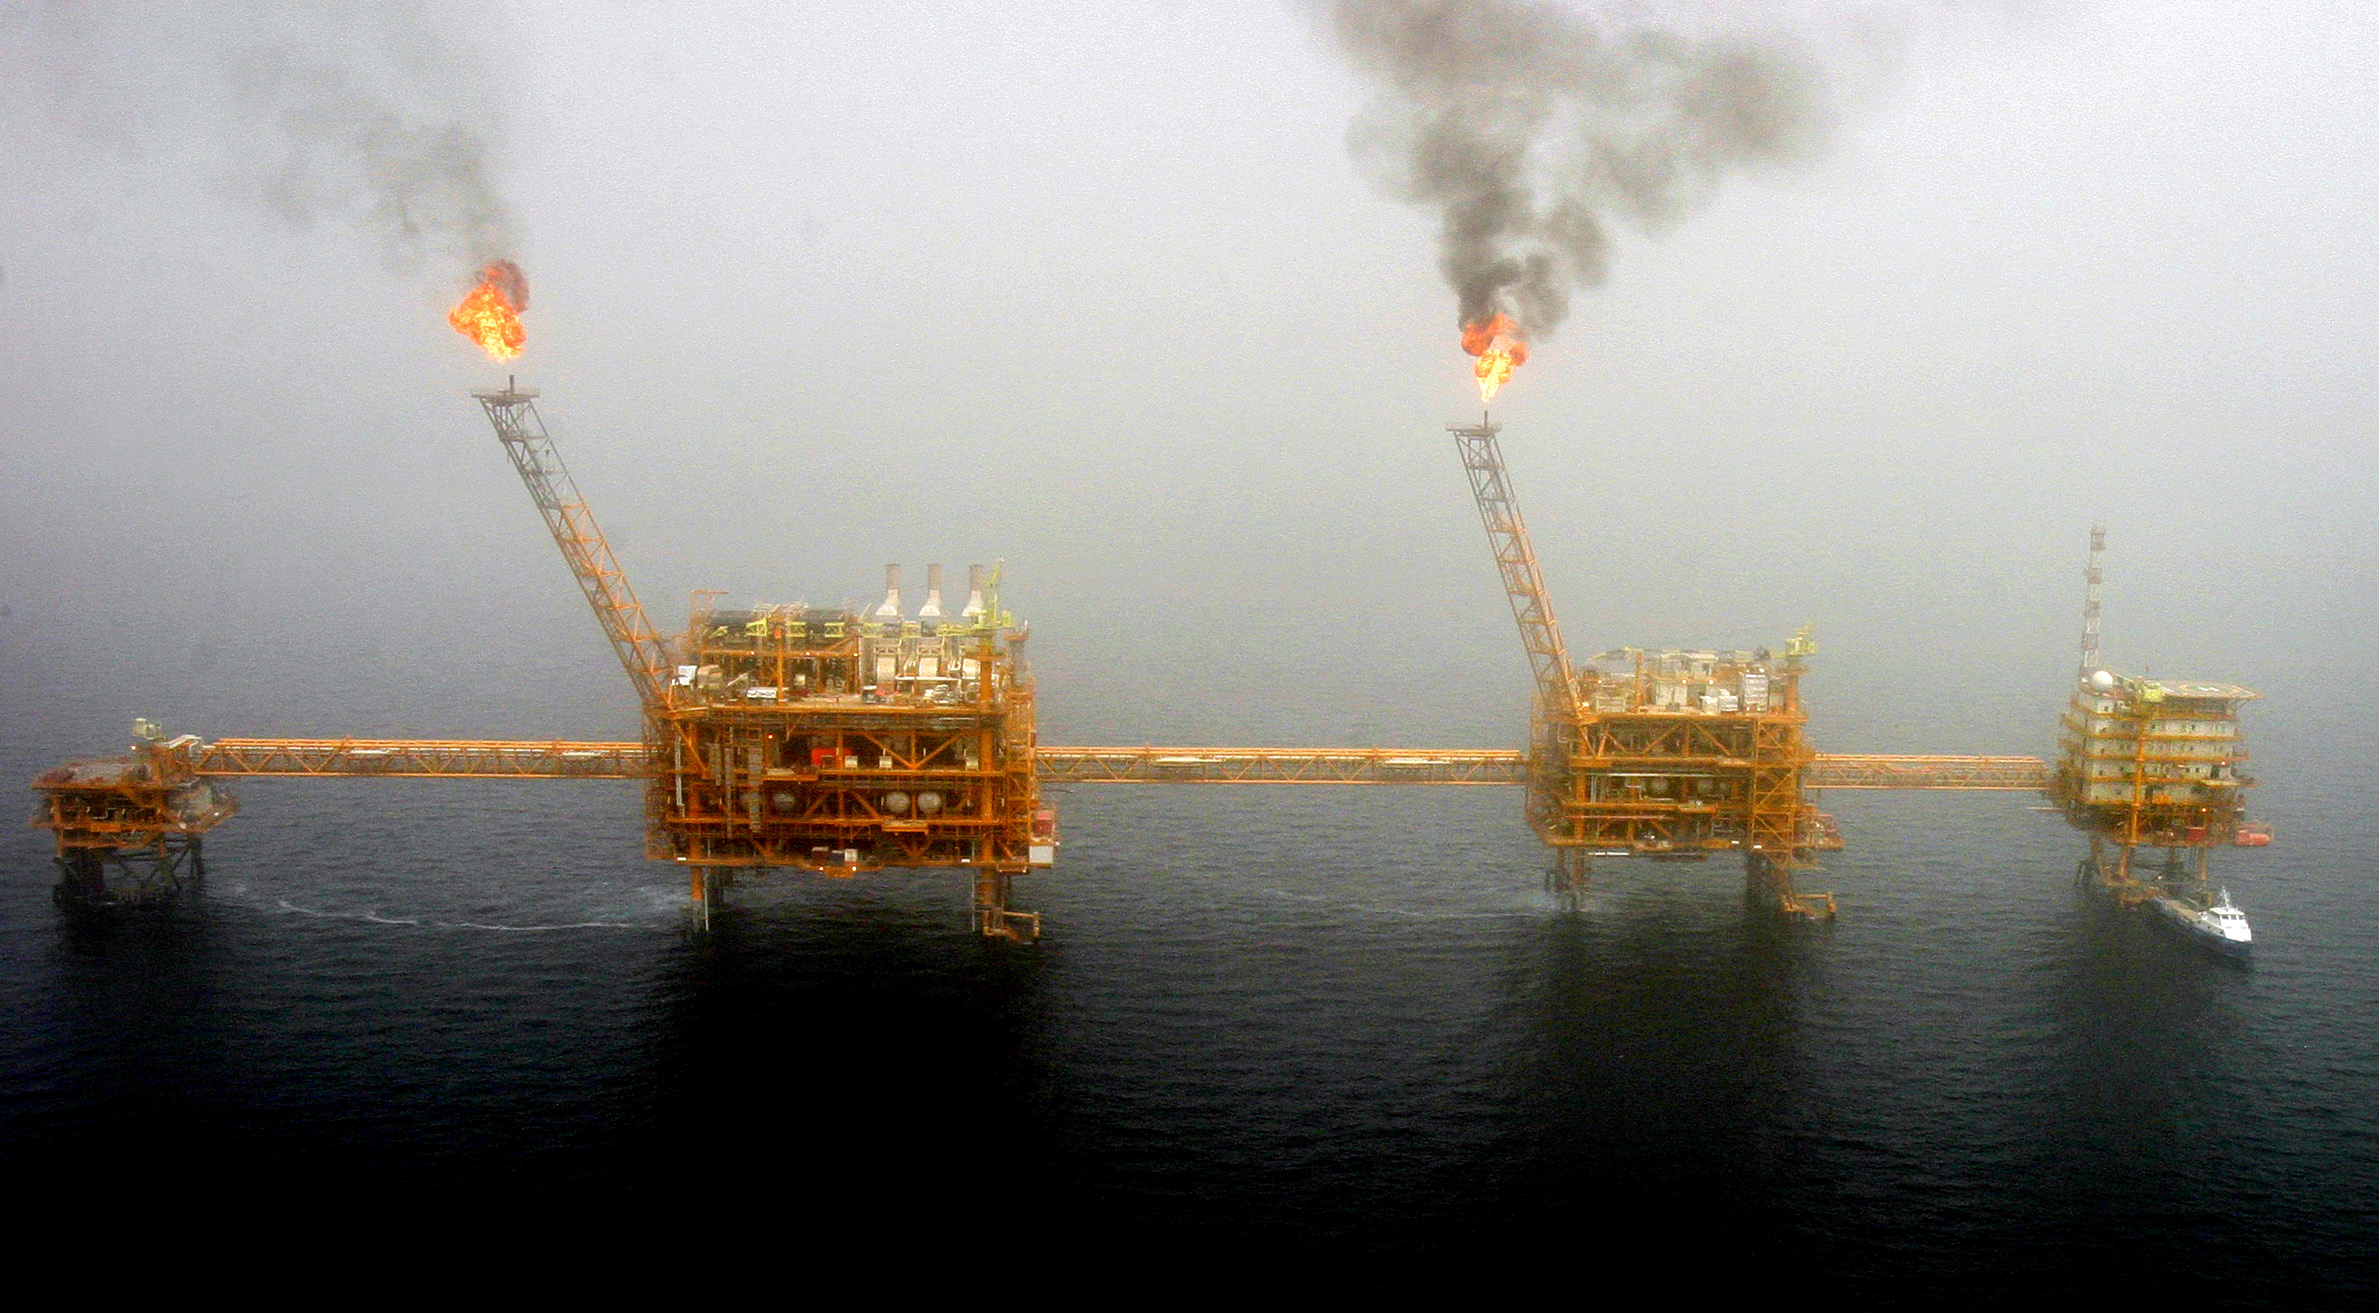 Gas flares from an oil production platform at the Soroush oil fields in the Persian Gulf, south of the capital Tehran, July 25, 2005.  REUTERS/Raheb Homavandi/File Photo - S1AETIFZOIAA